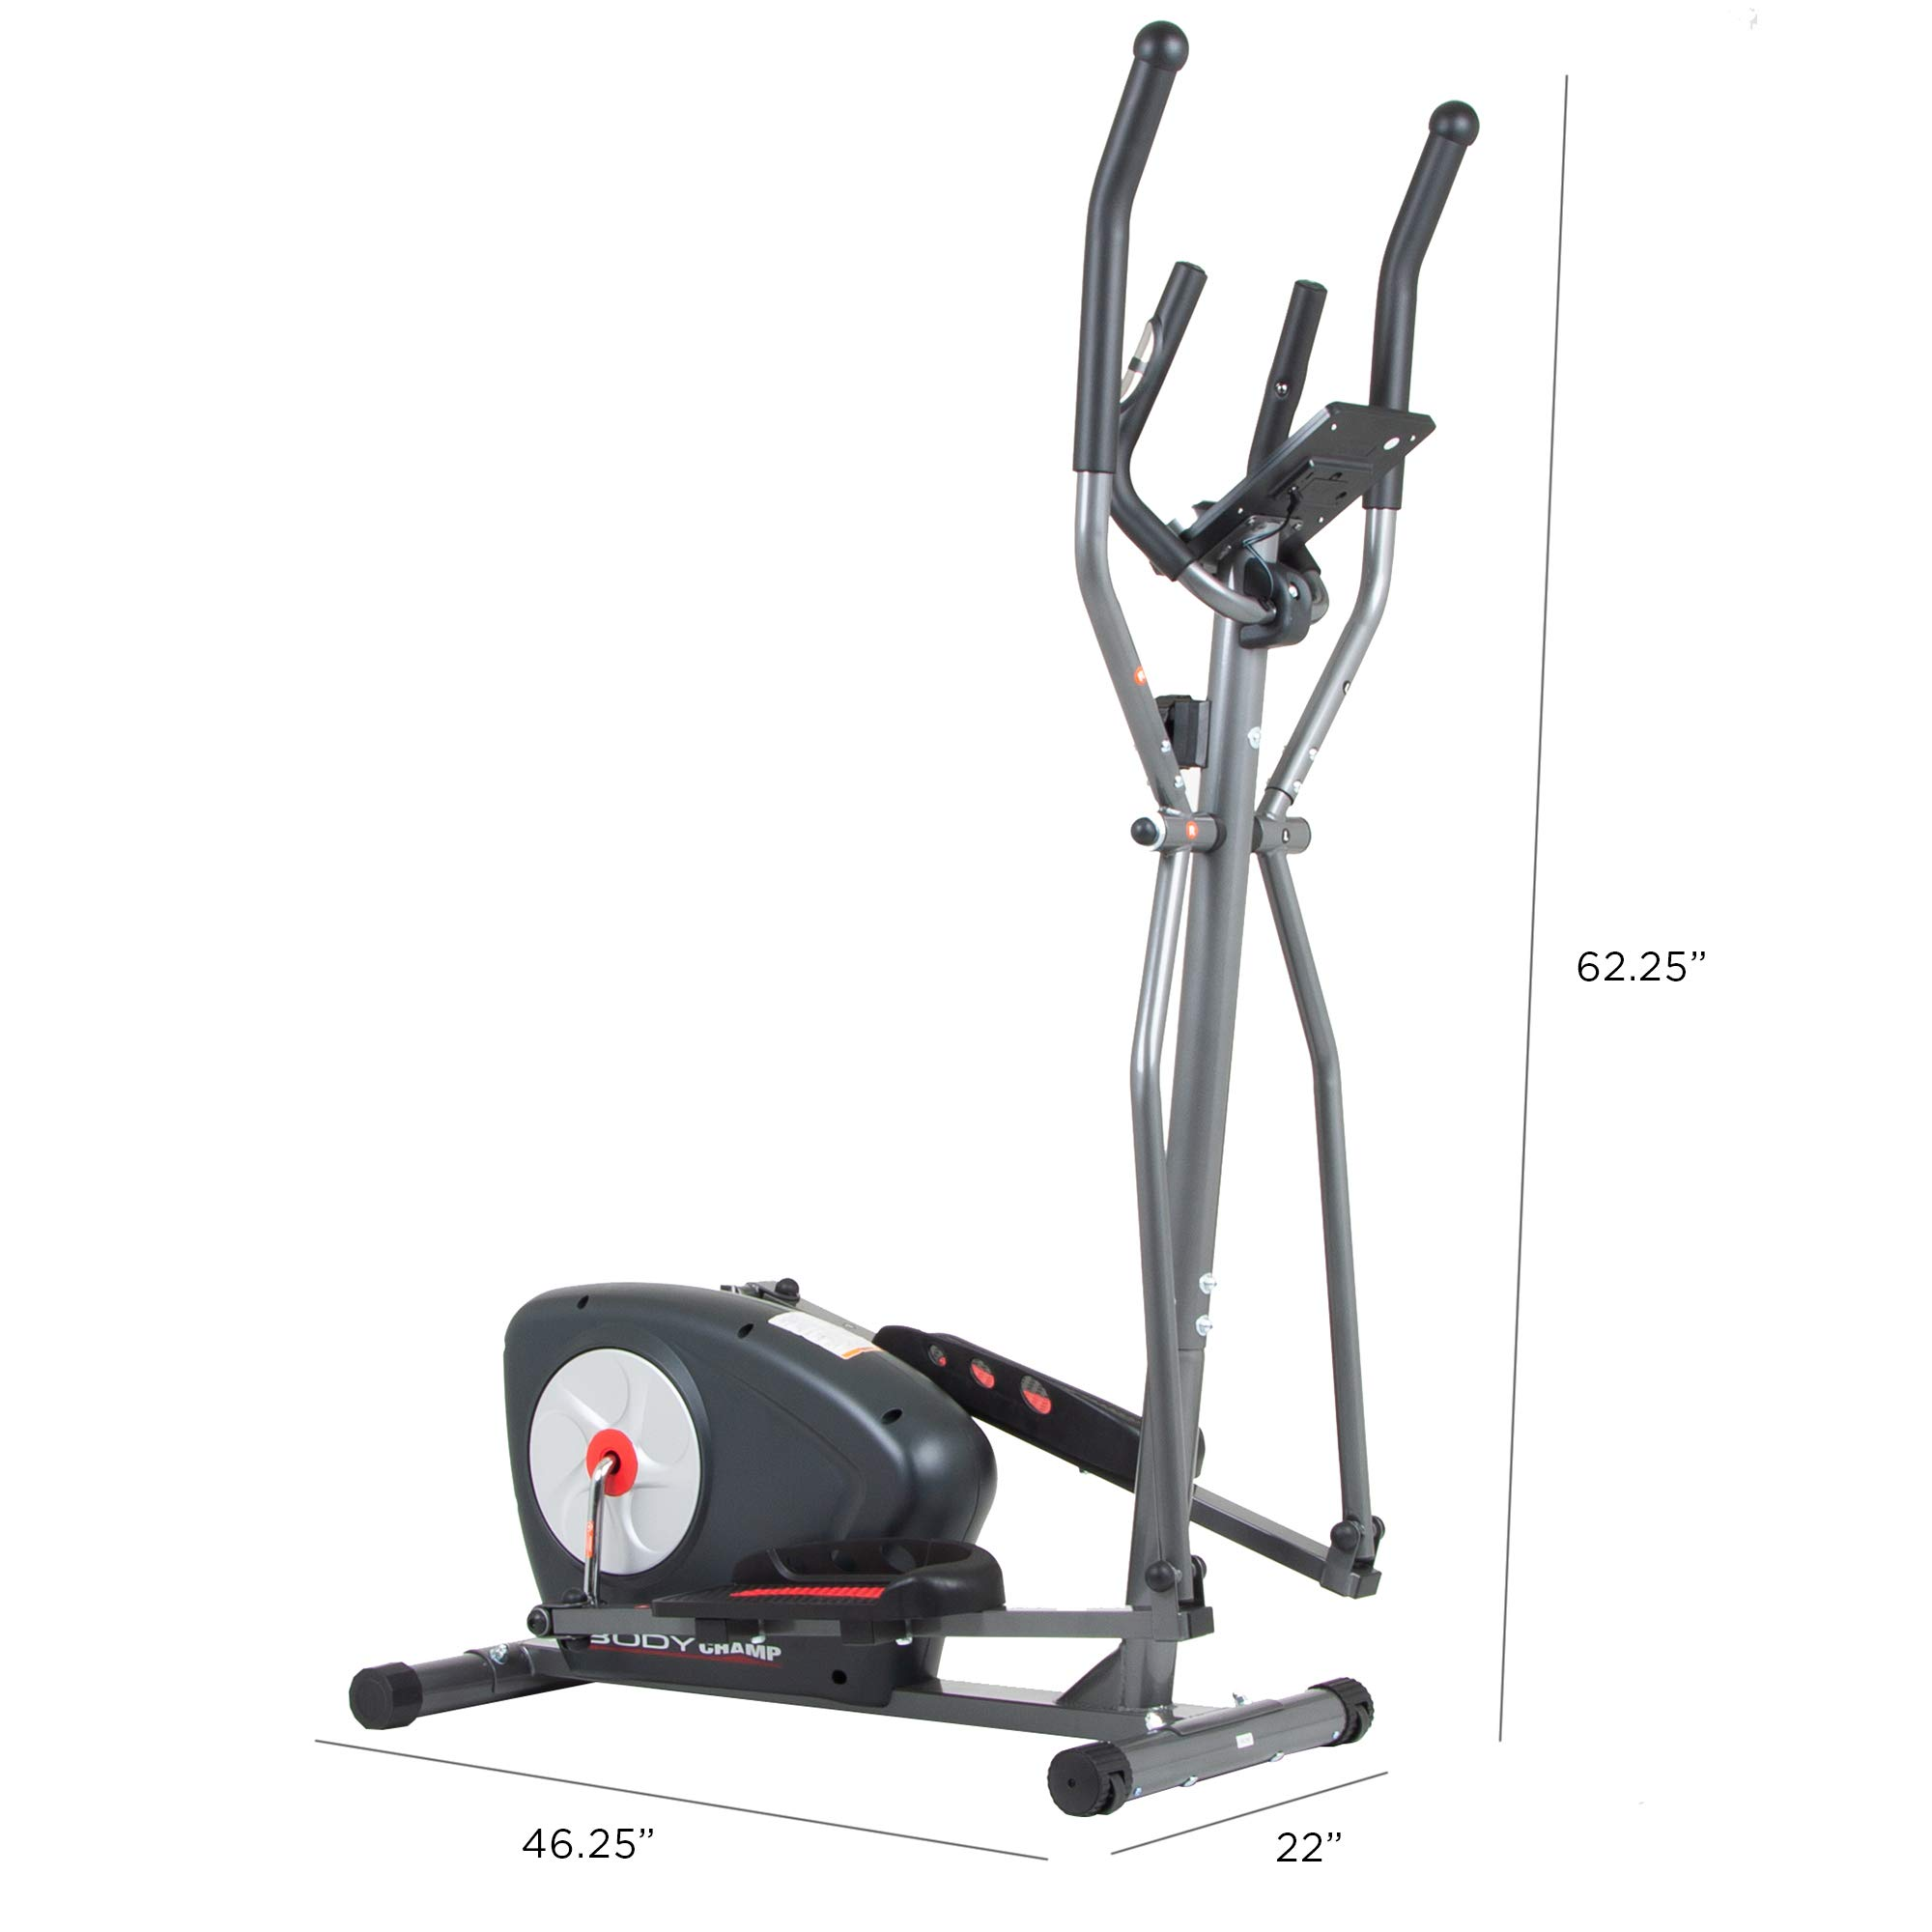 Body Champ New Elliptical Machine Trainer Magnetic Smooth Quiet Driven with LCD Media Holder Monitor and Pulse Rate Grips BR2117 by Body Champ (Image #3)